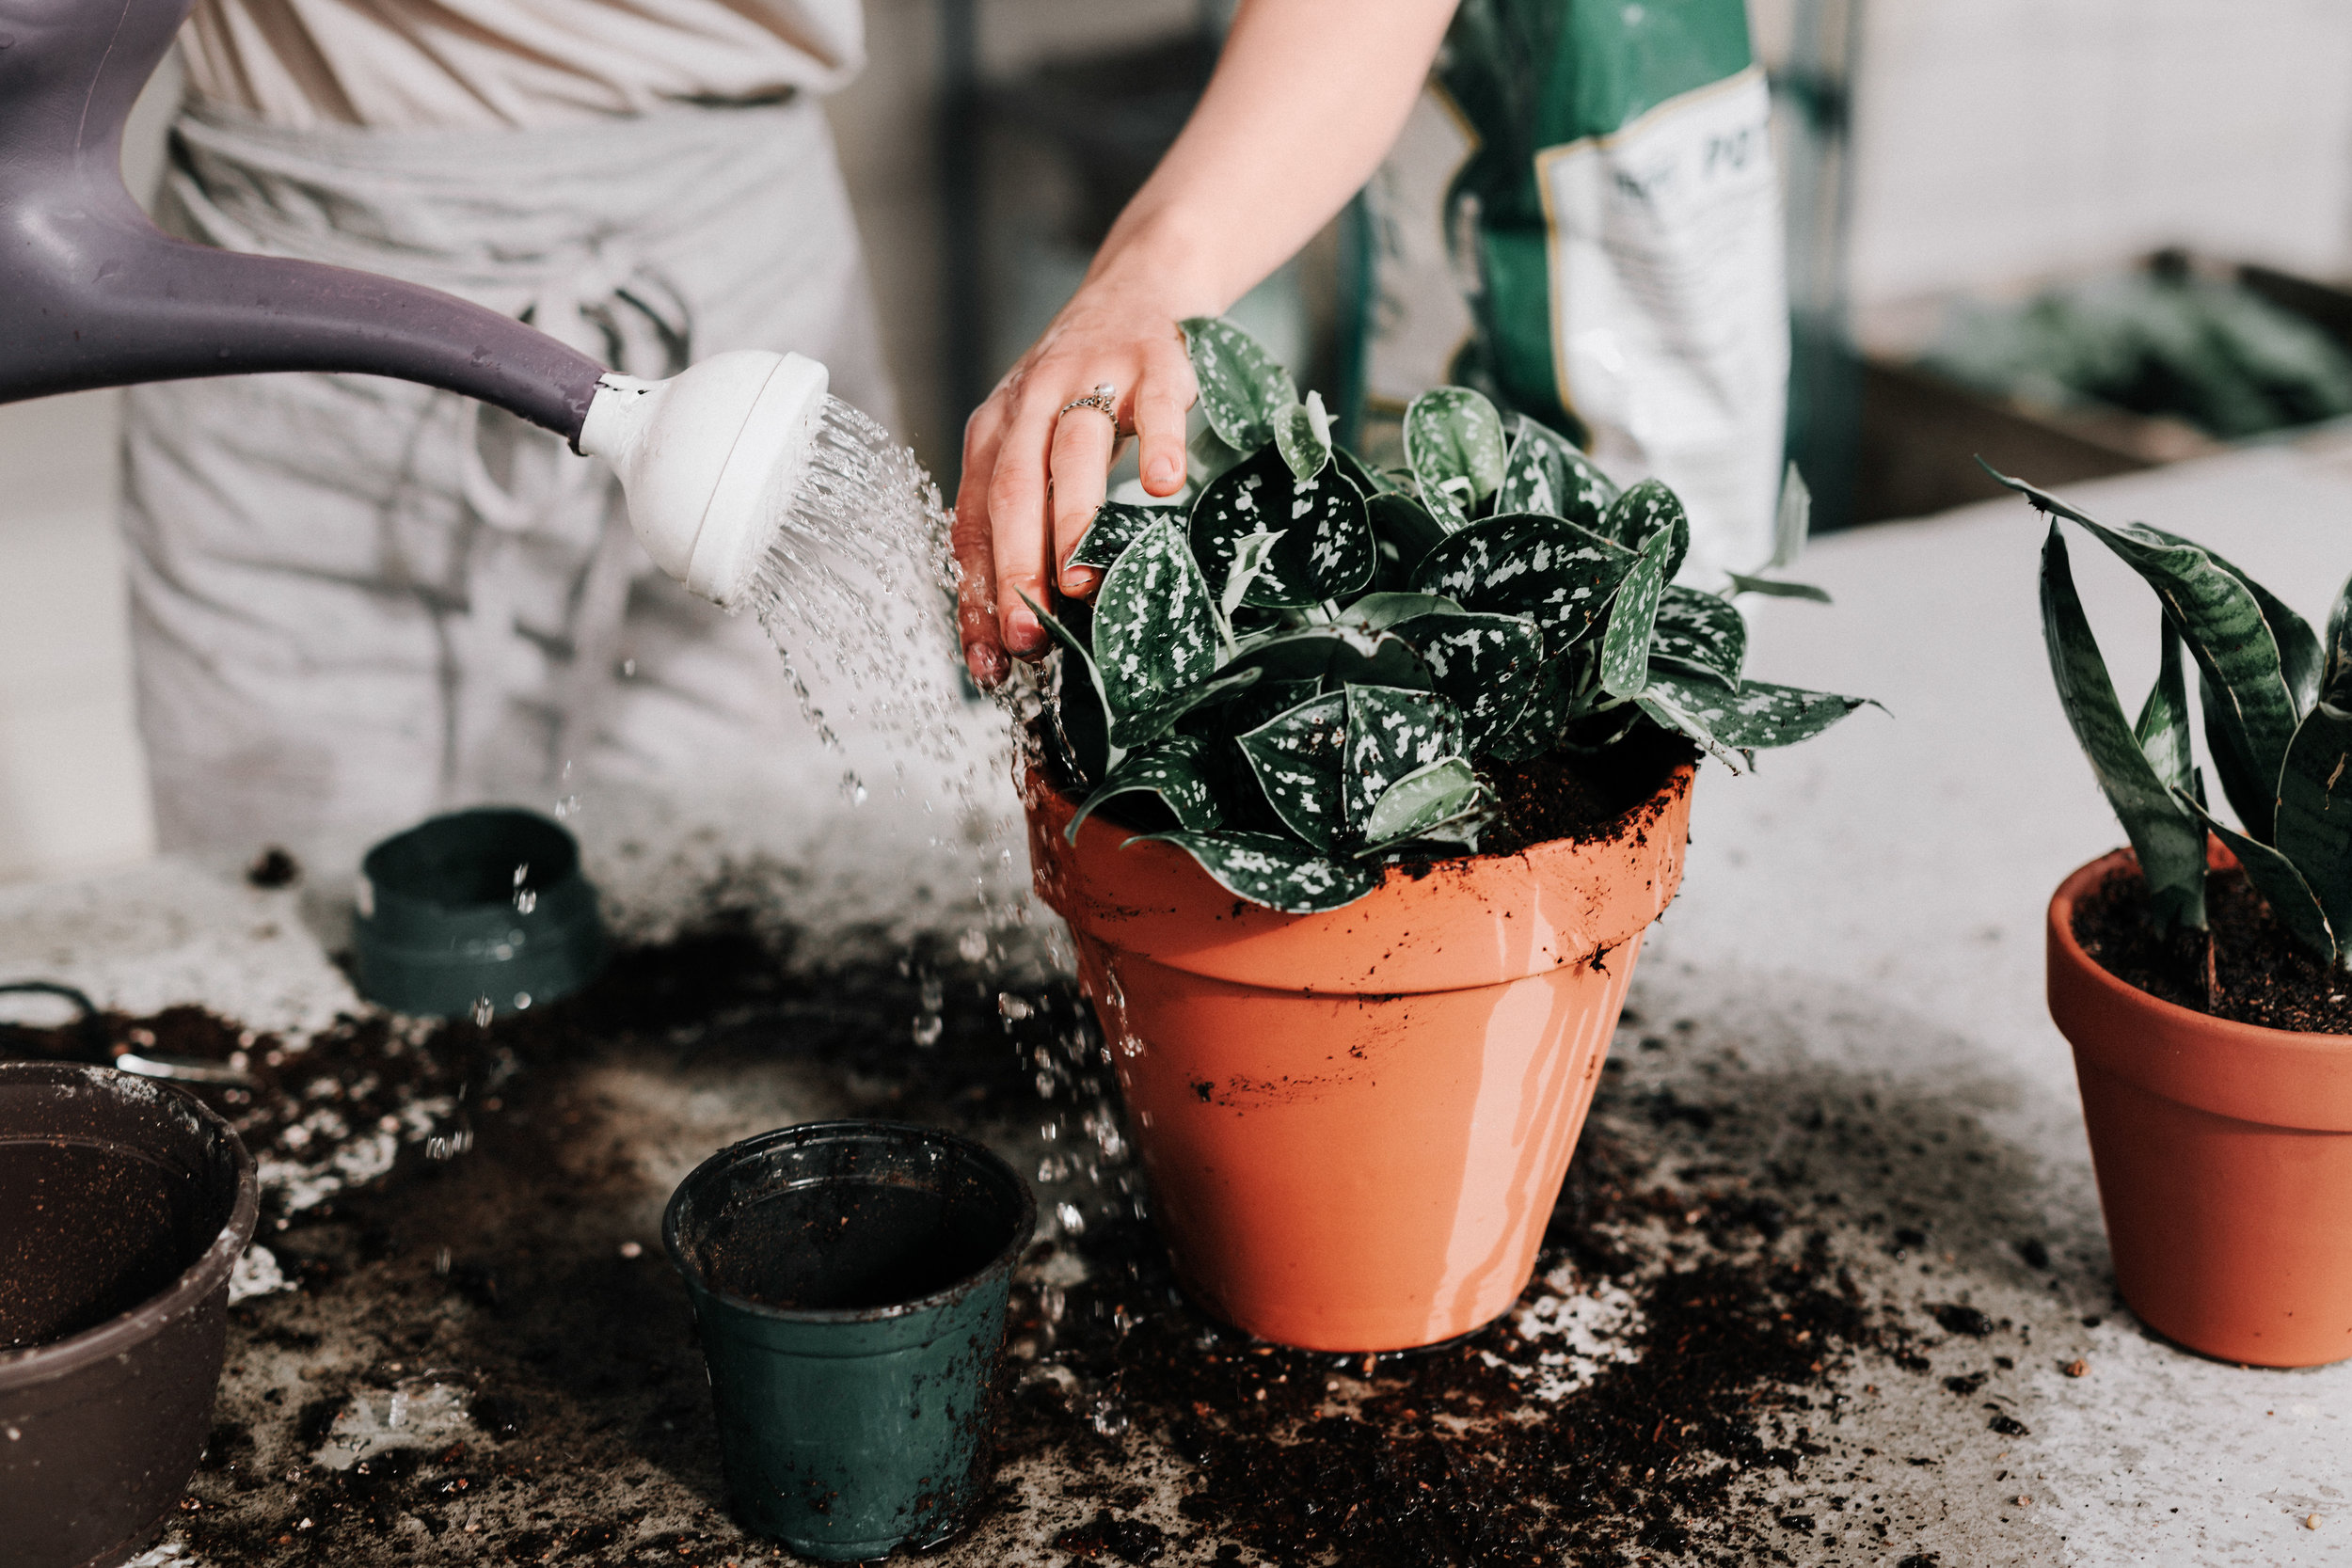 How to water your houseplants (the RIGHT WAY!) #growwellpodcast